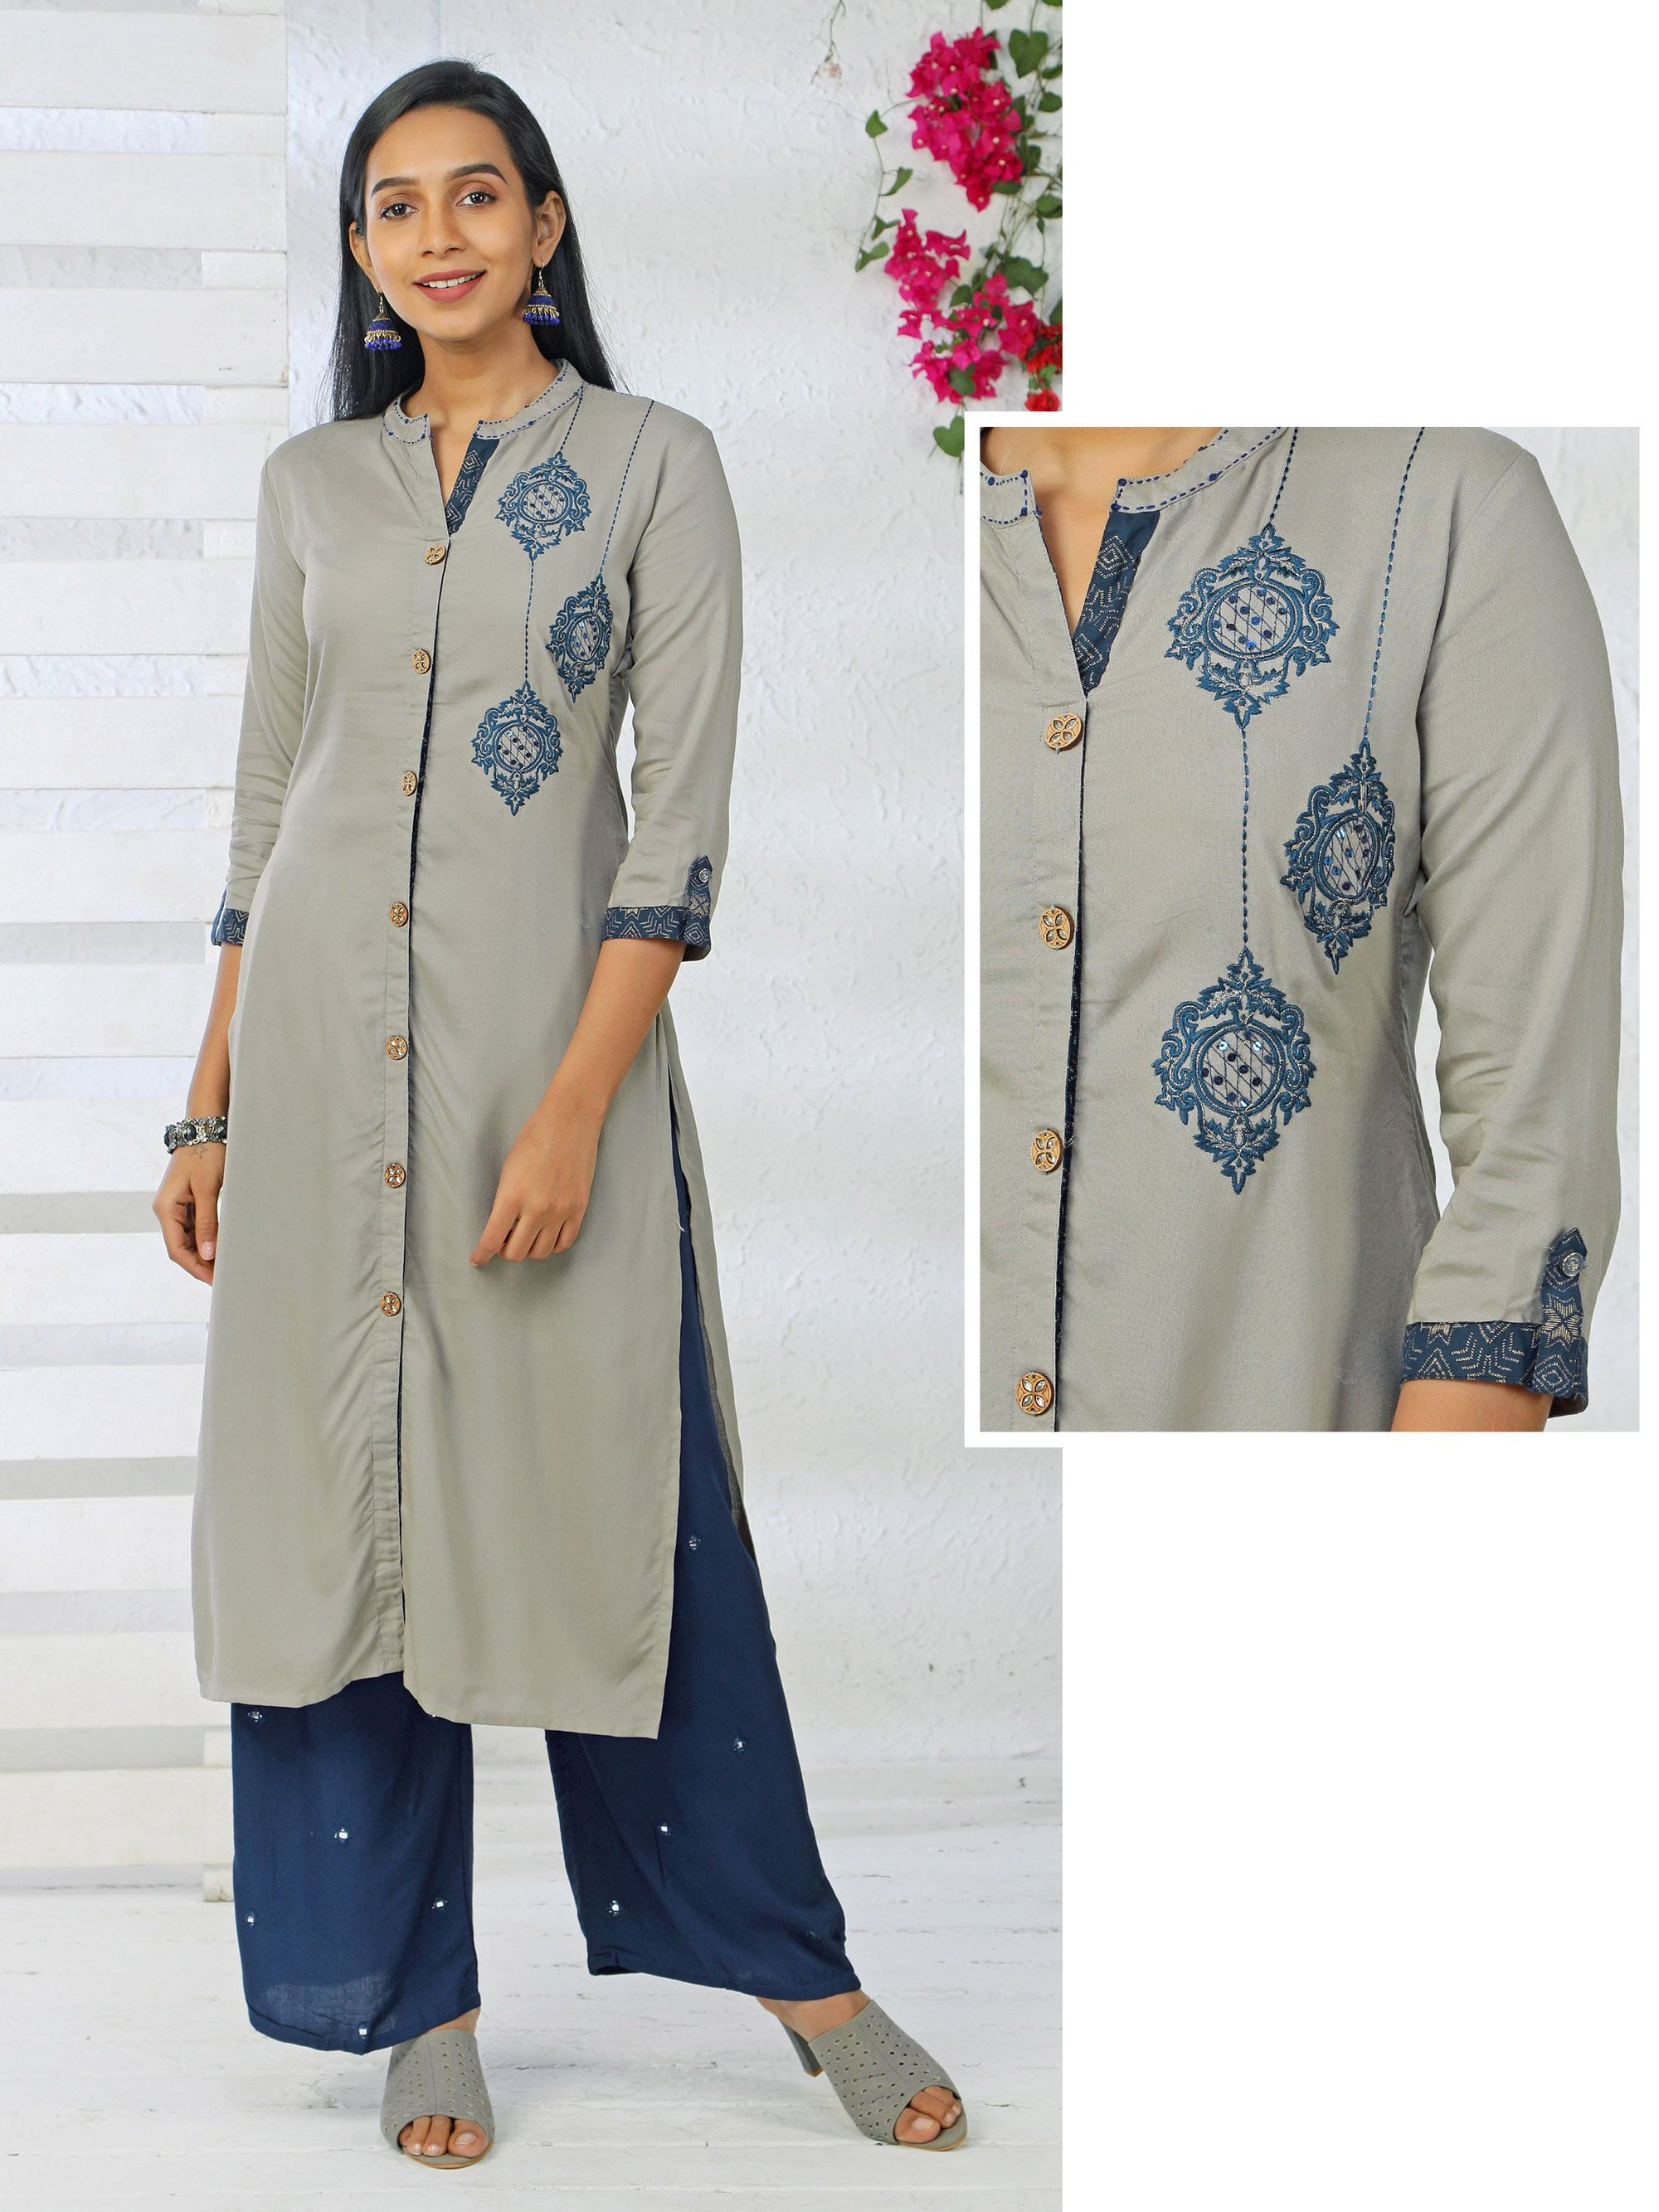 Chandelier Embroidery and Sequins Kurta